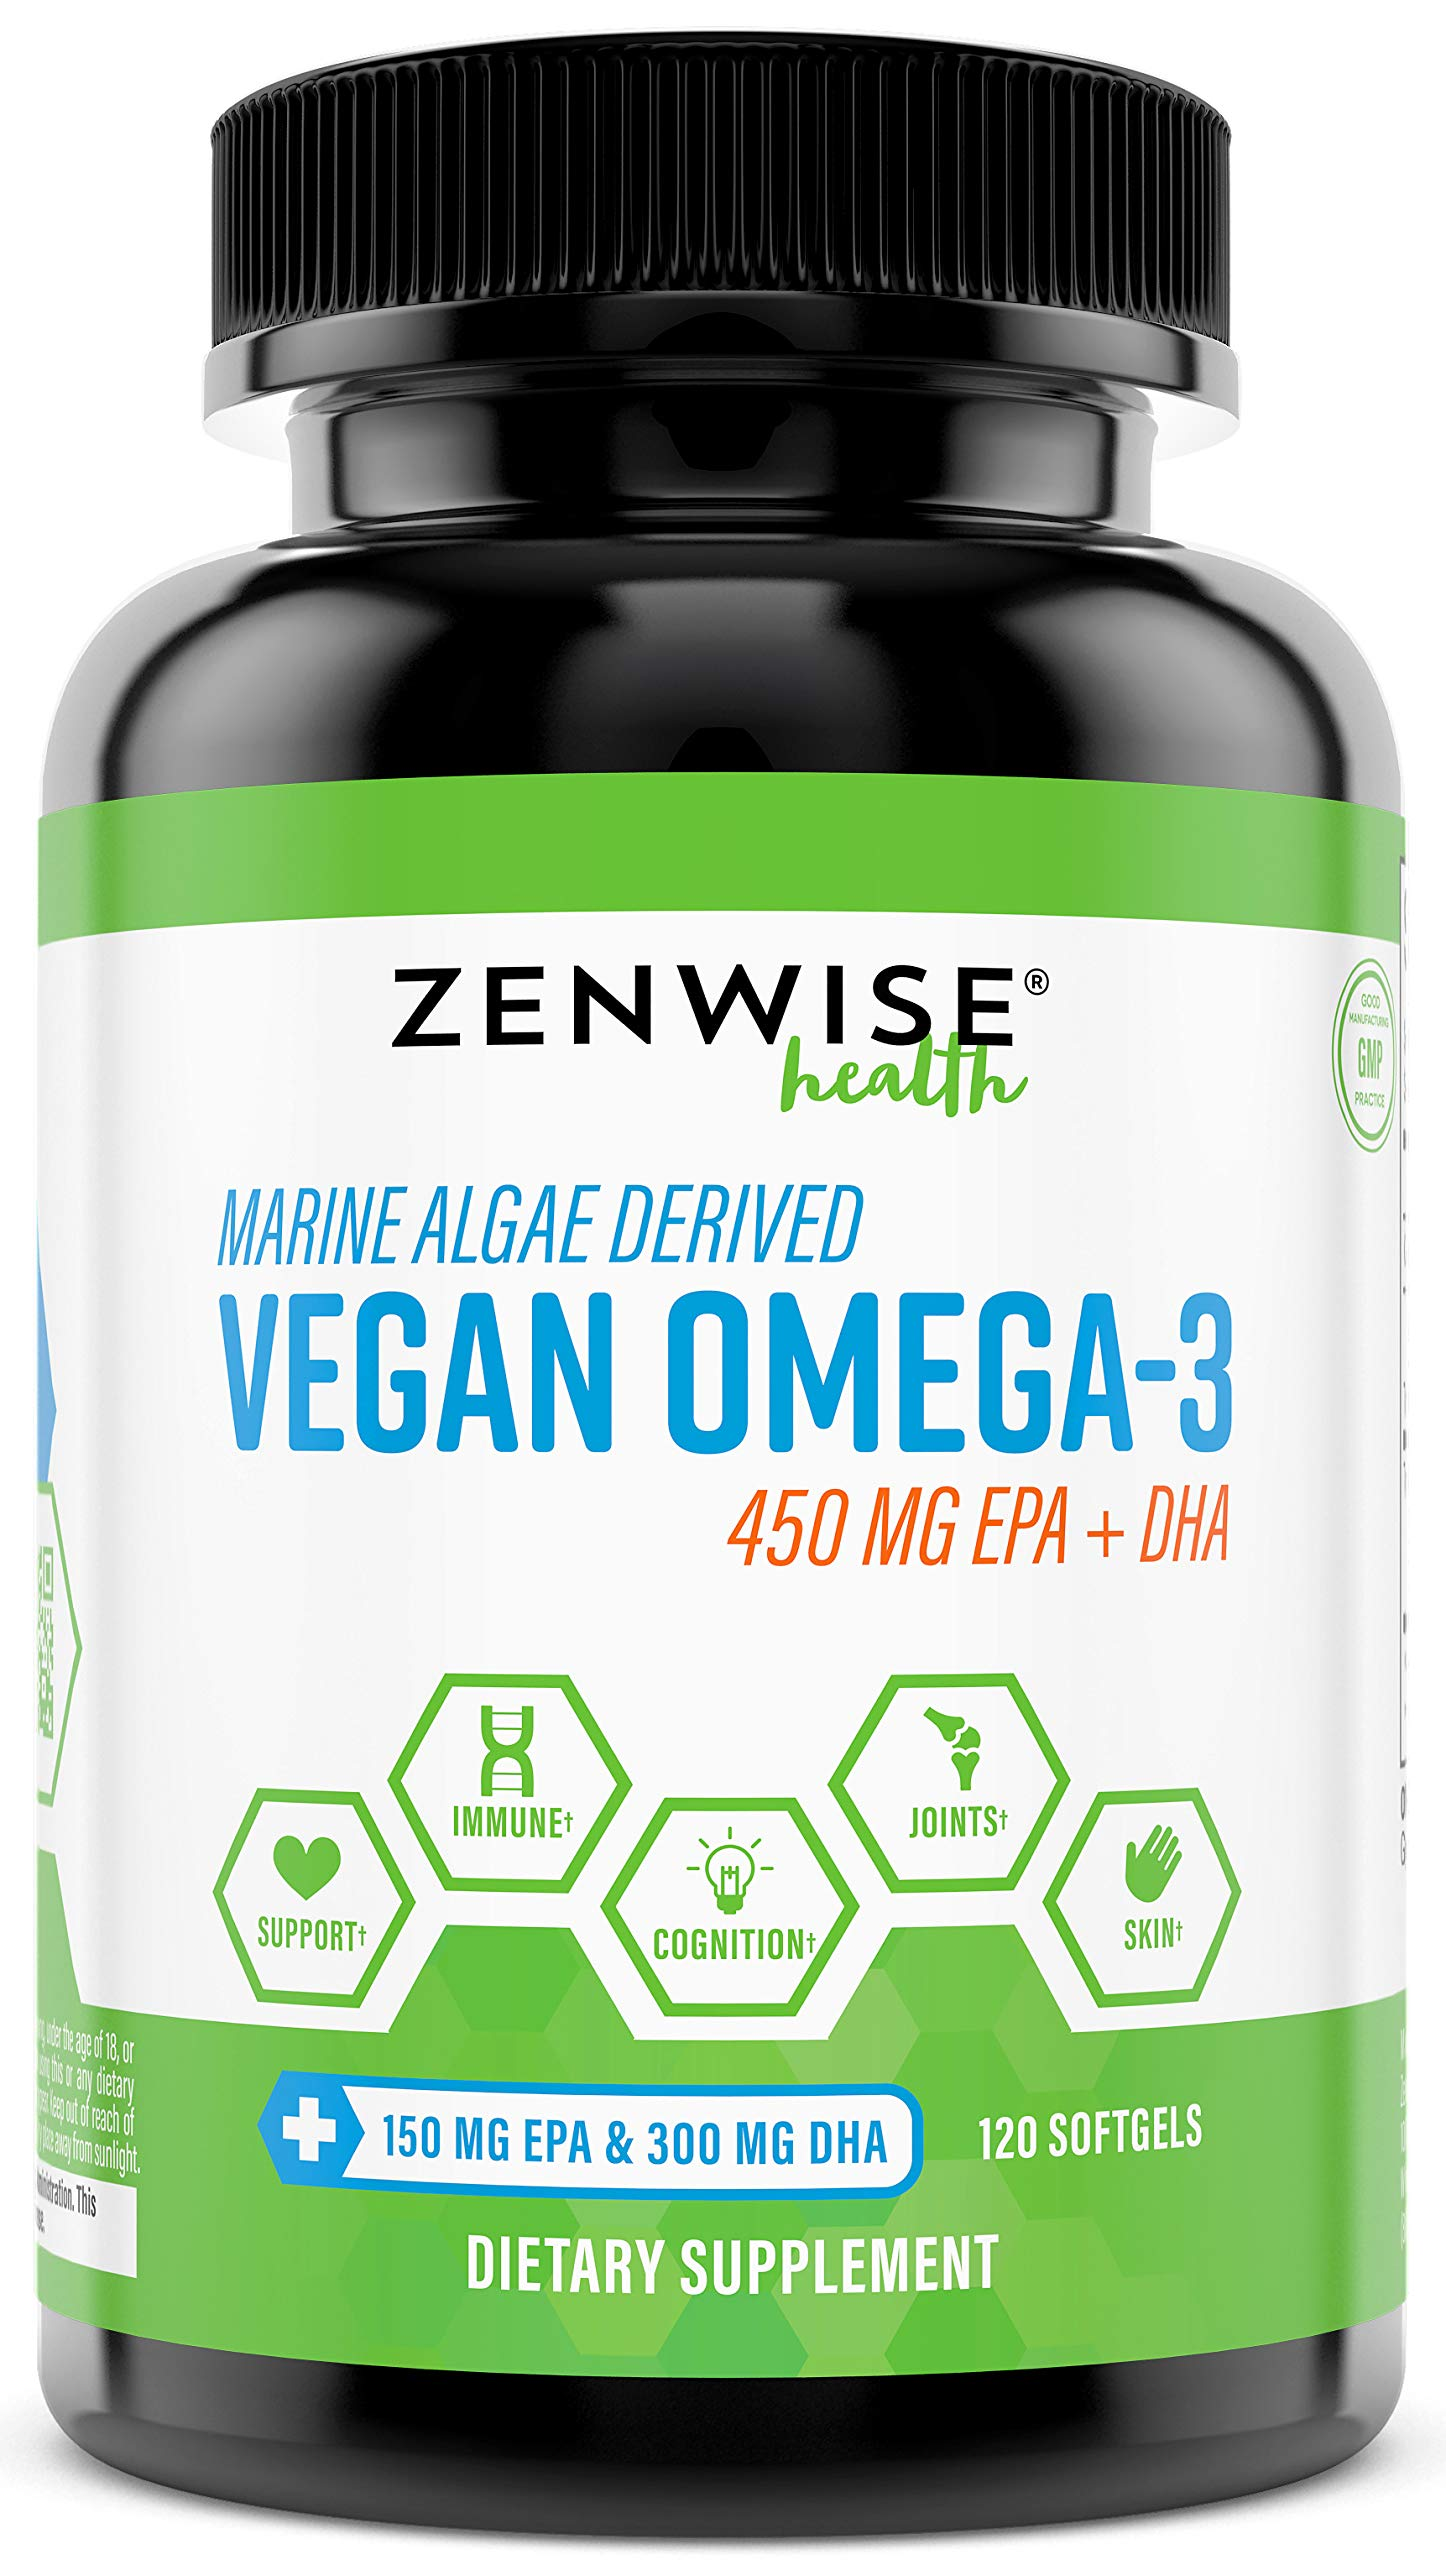 Vegan Omega 3 Supplement - Marine Algal Source of EPA & DHA Fatty Acids - For Joint Support & Immune System - Heart & Skin + Brain Health Booster - Fish Oil Free Formula for Men & Women - 120 Softgels by Zenwise Health